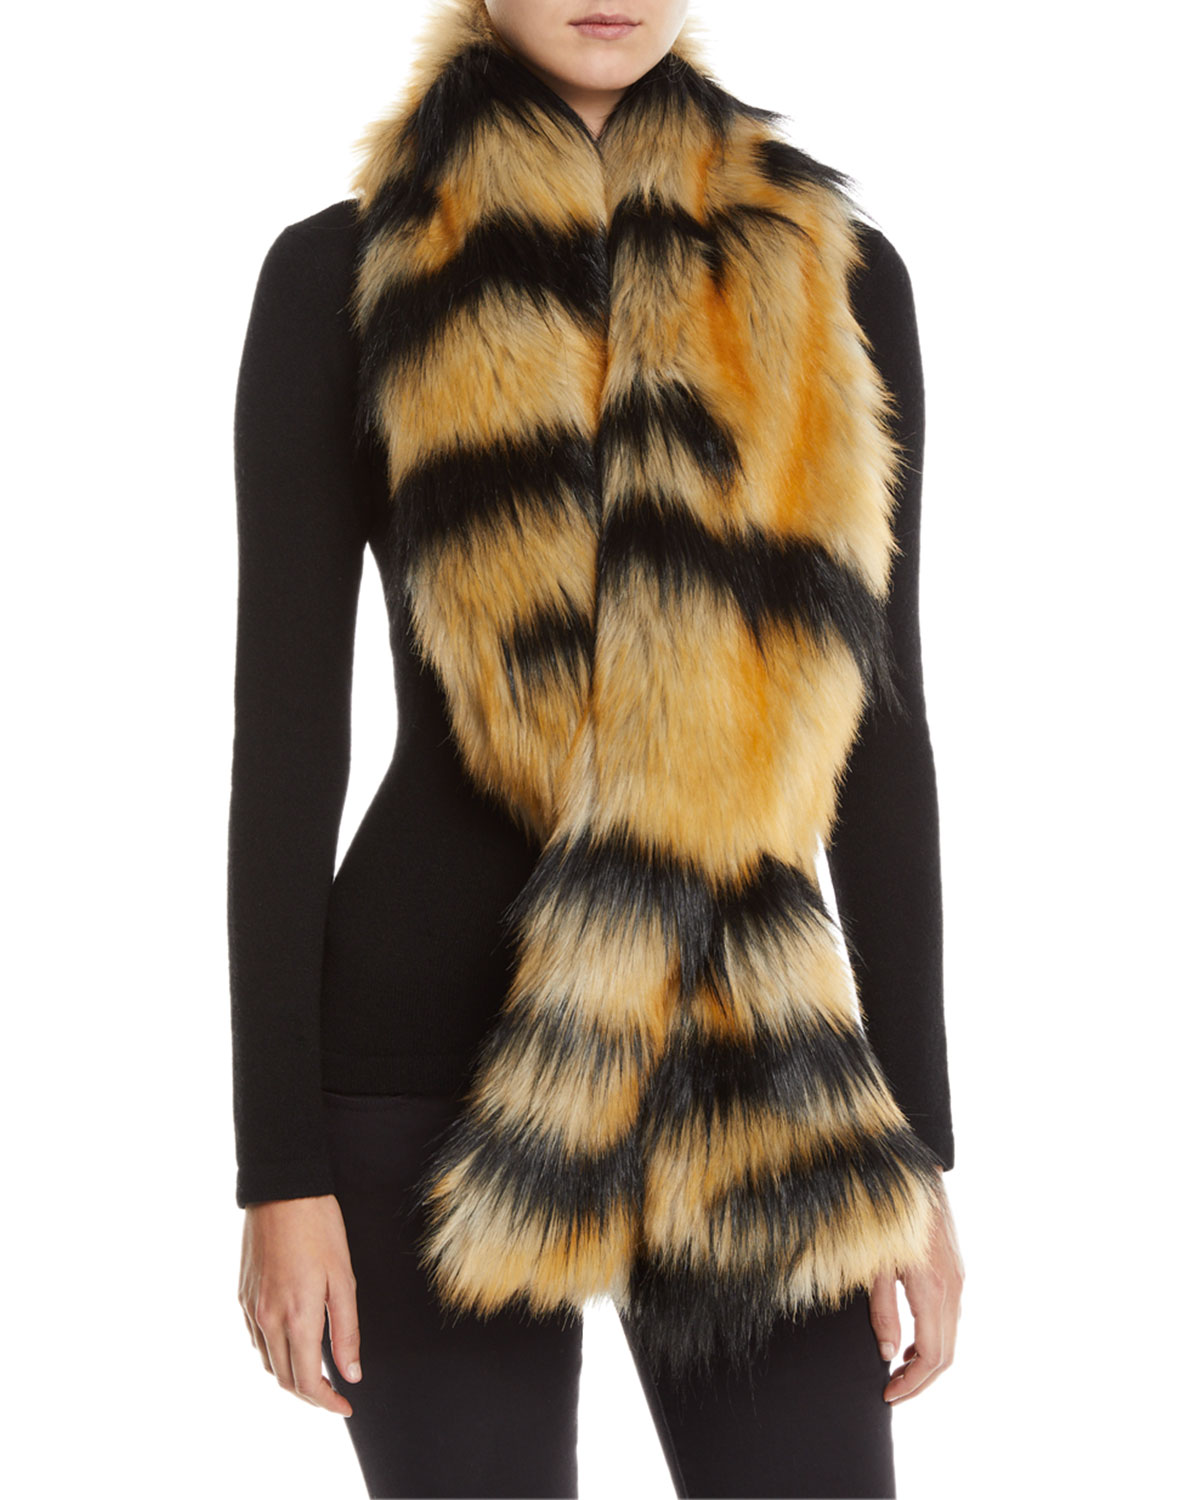 FABULOUS FURS Oversized Pull-Through Scarf in Crystal Fox